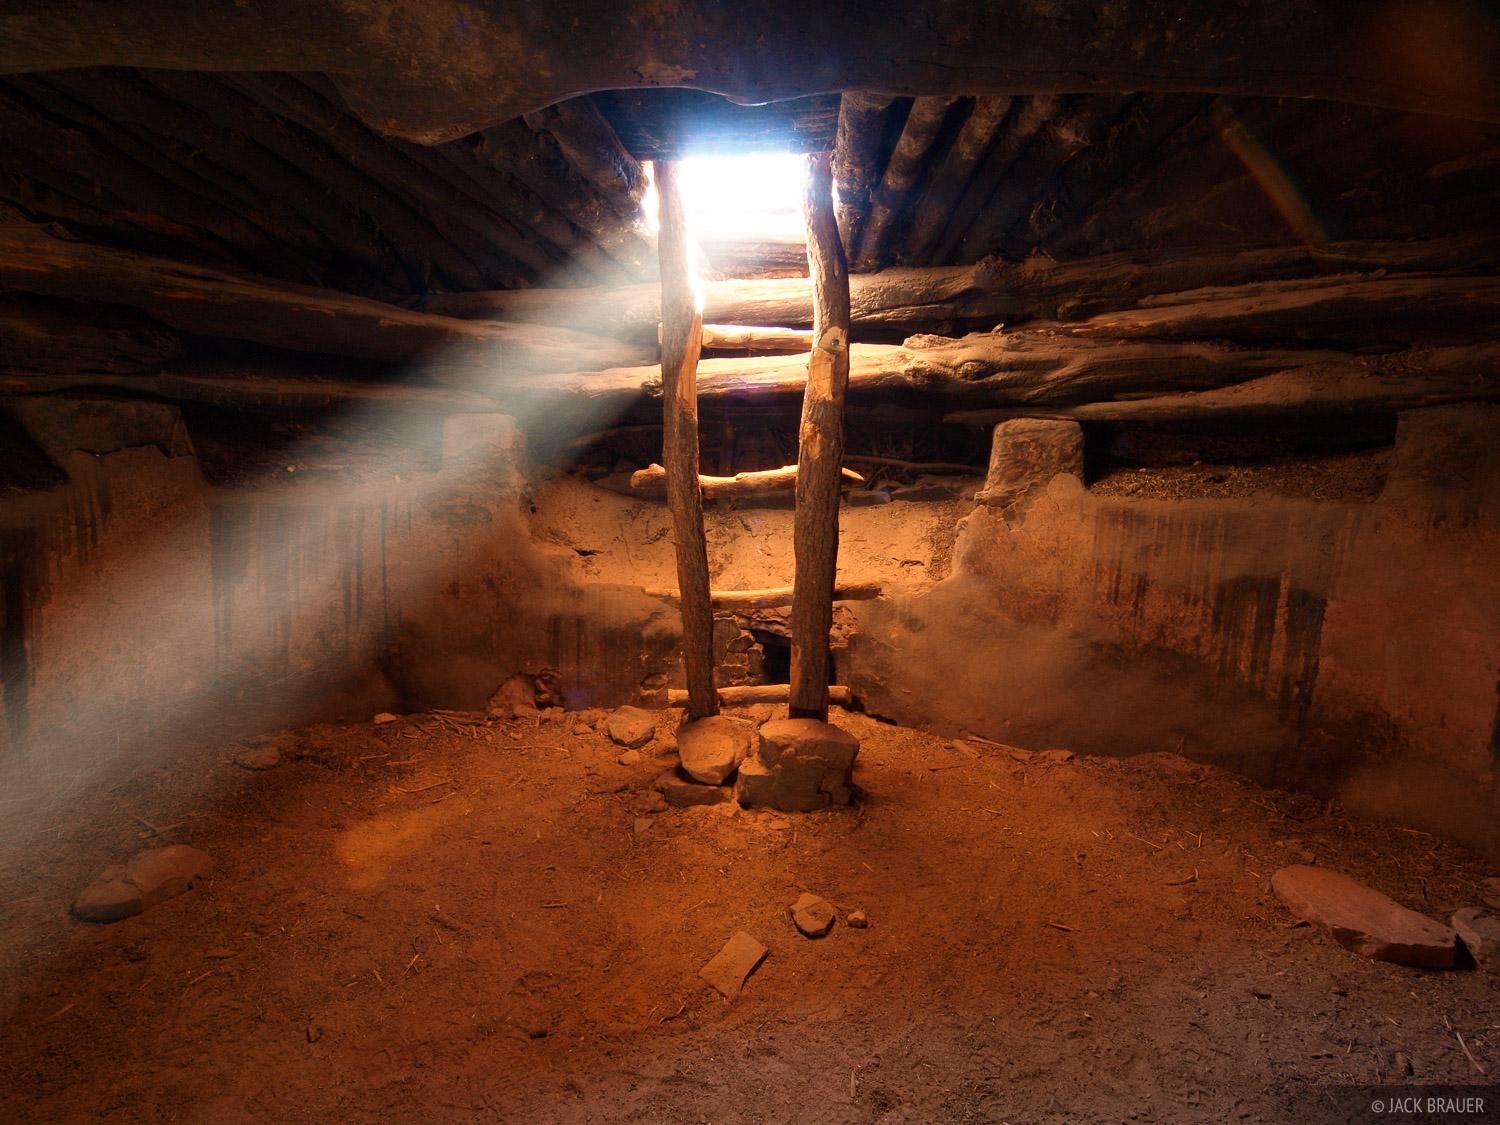 Supposedly this kiva was discovered intact in the 1890s, but by the 1970s the roof was starting to collapse. Restoration efforts...